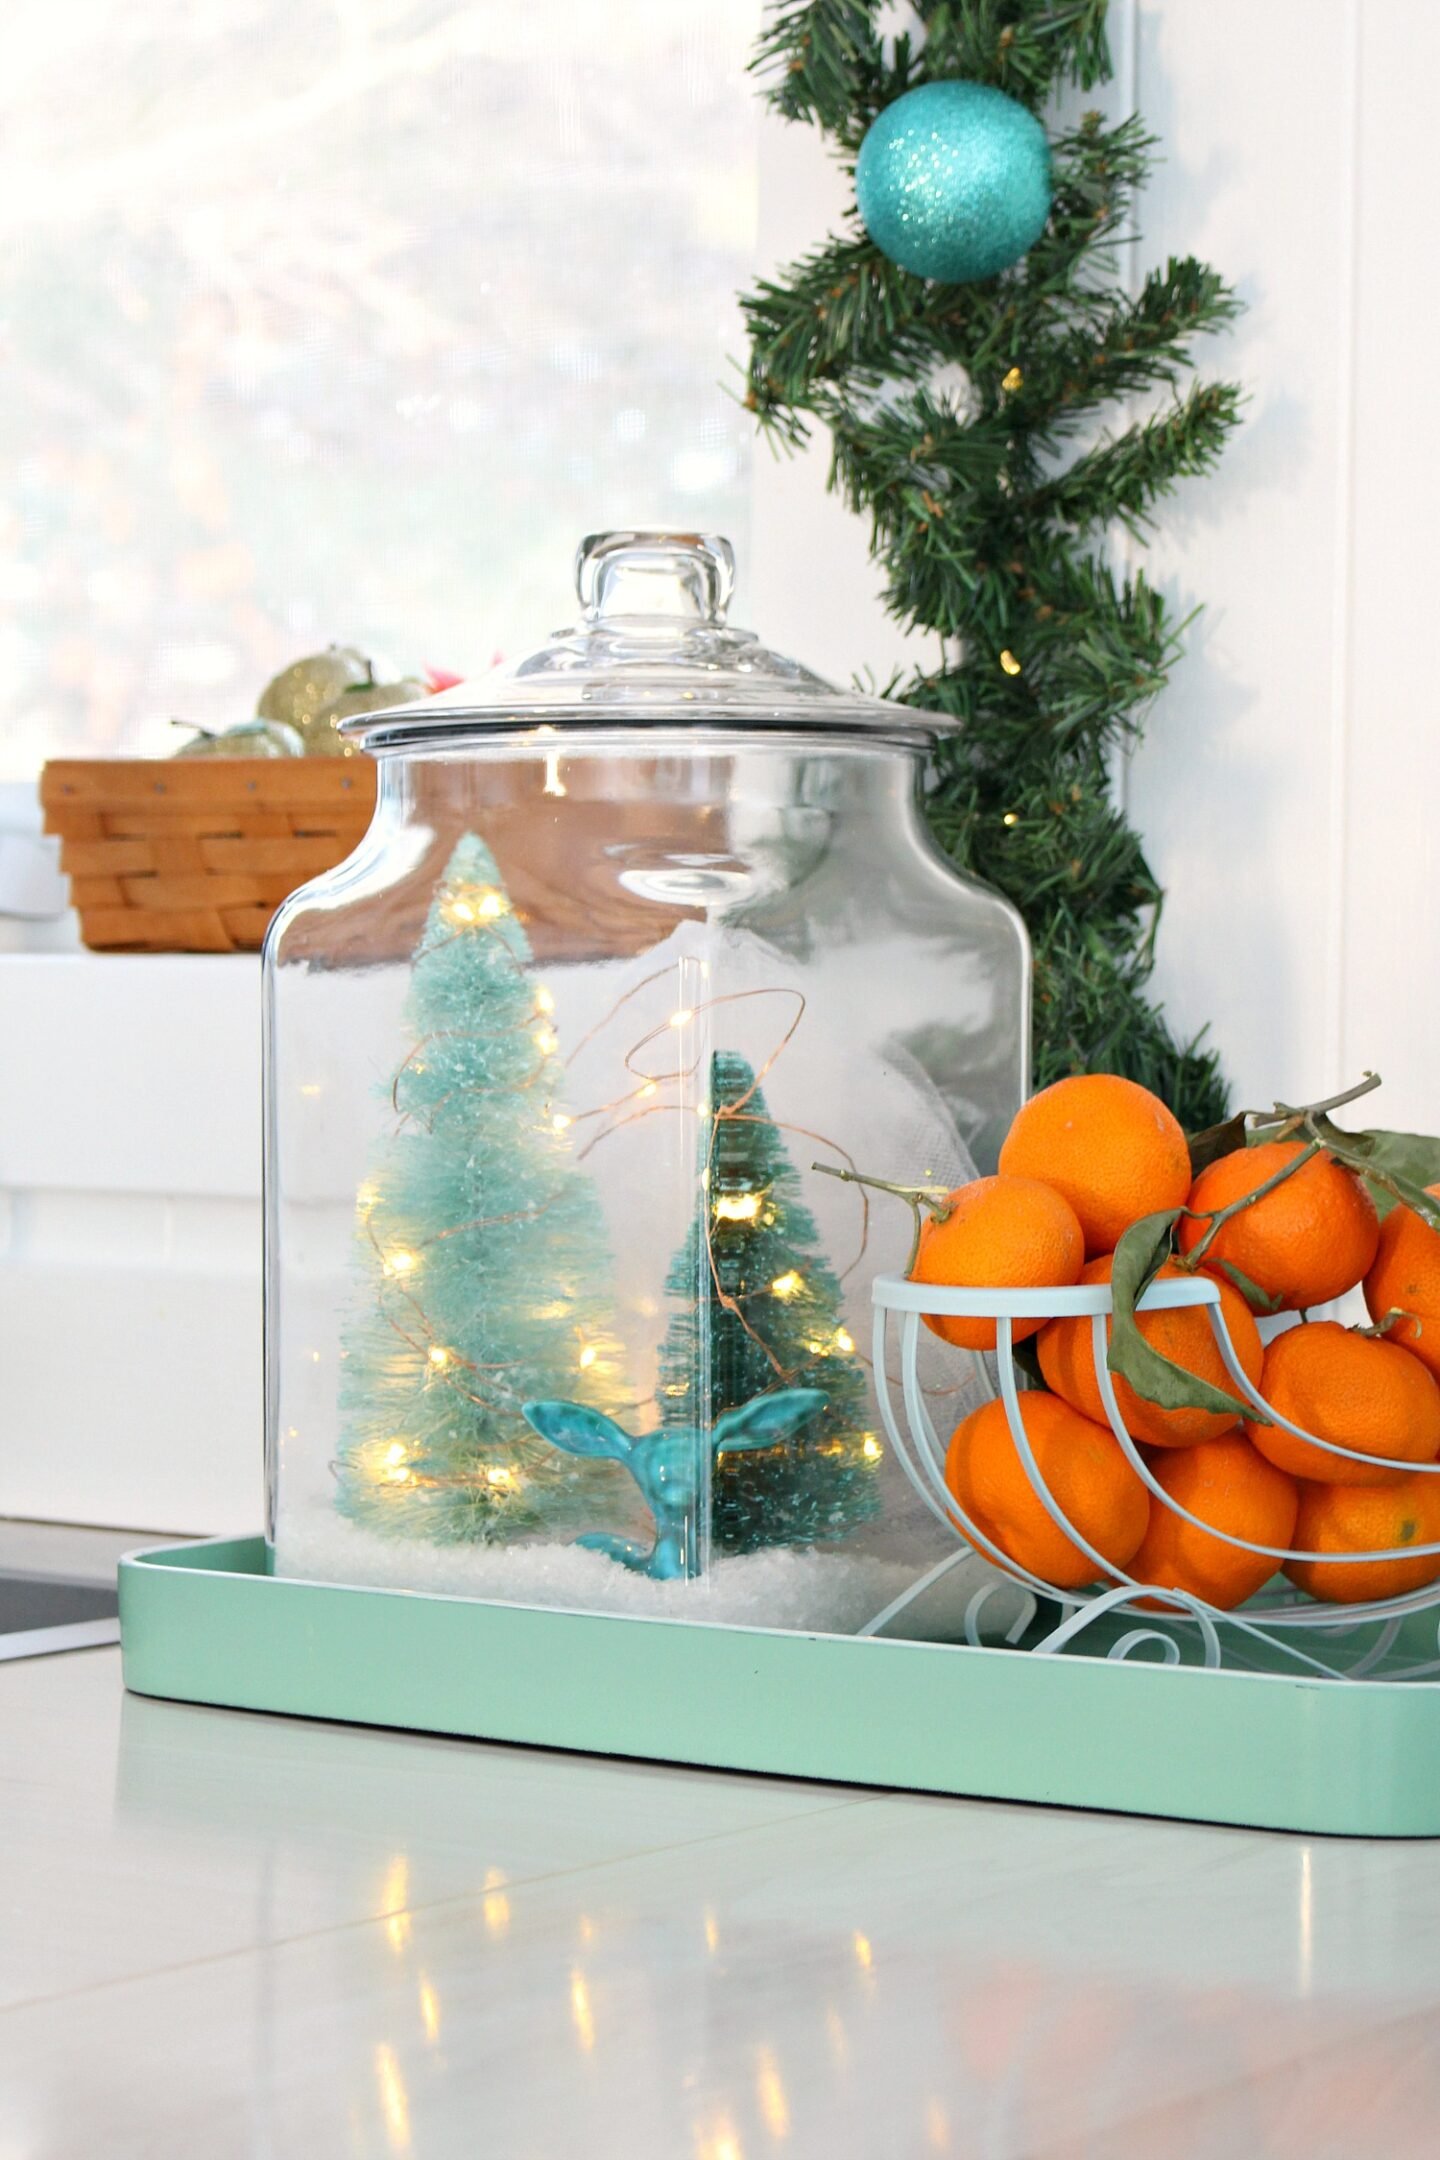 DIY Winter Scene in a Glass Jar